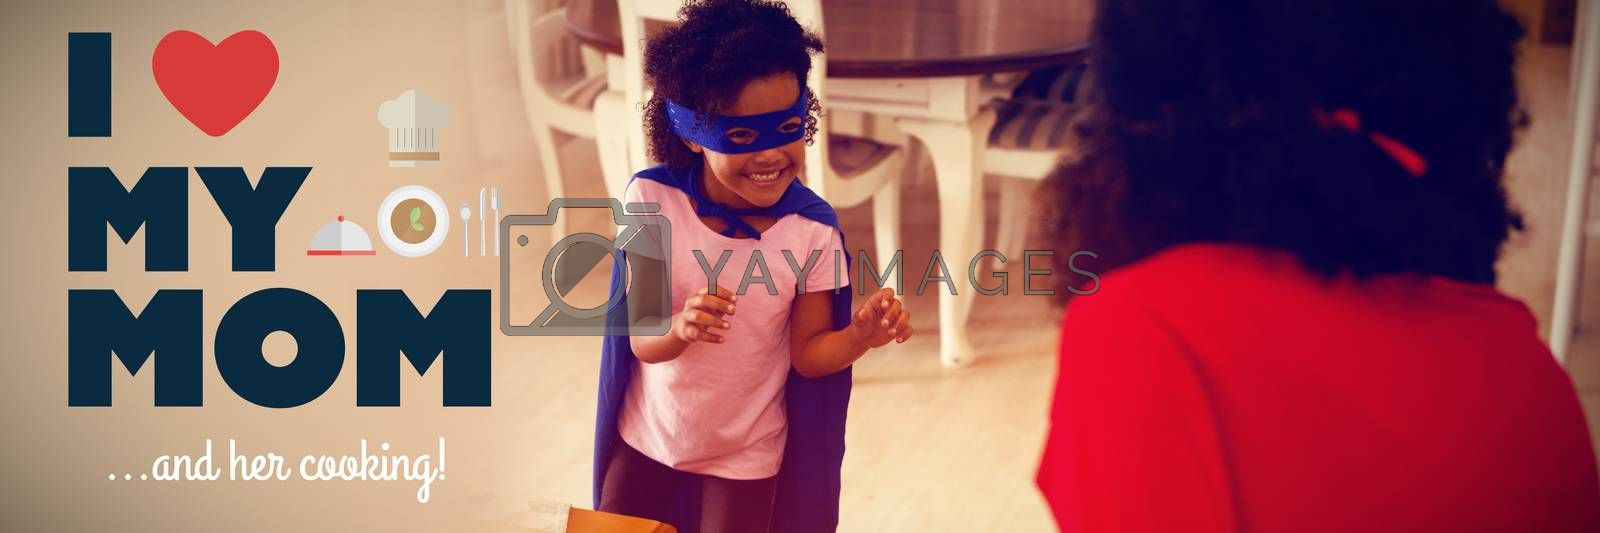 mothers day greeting against mother and daughter playing super heroes